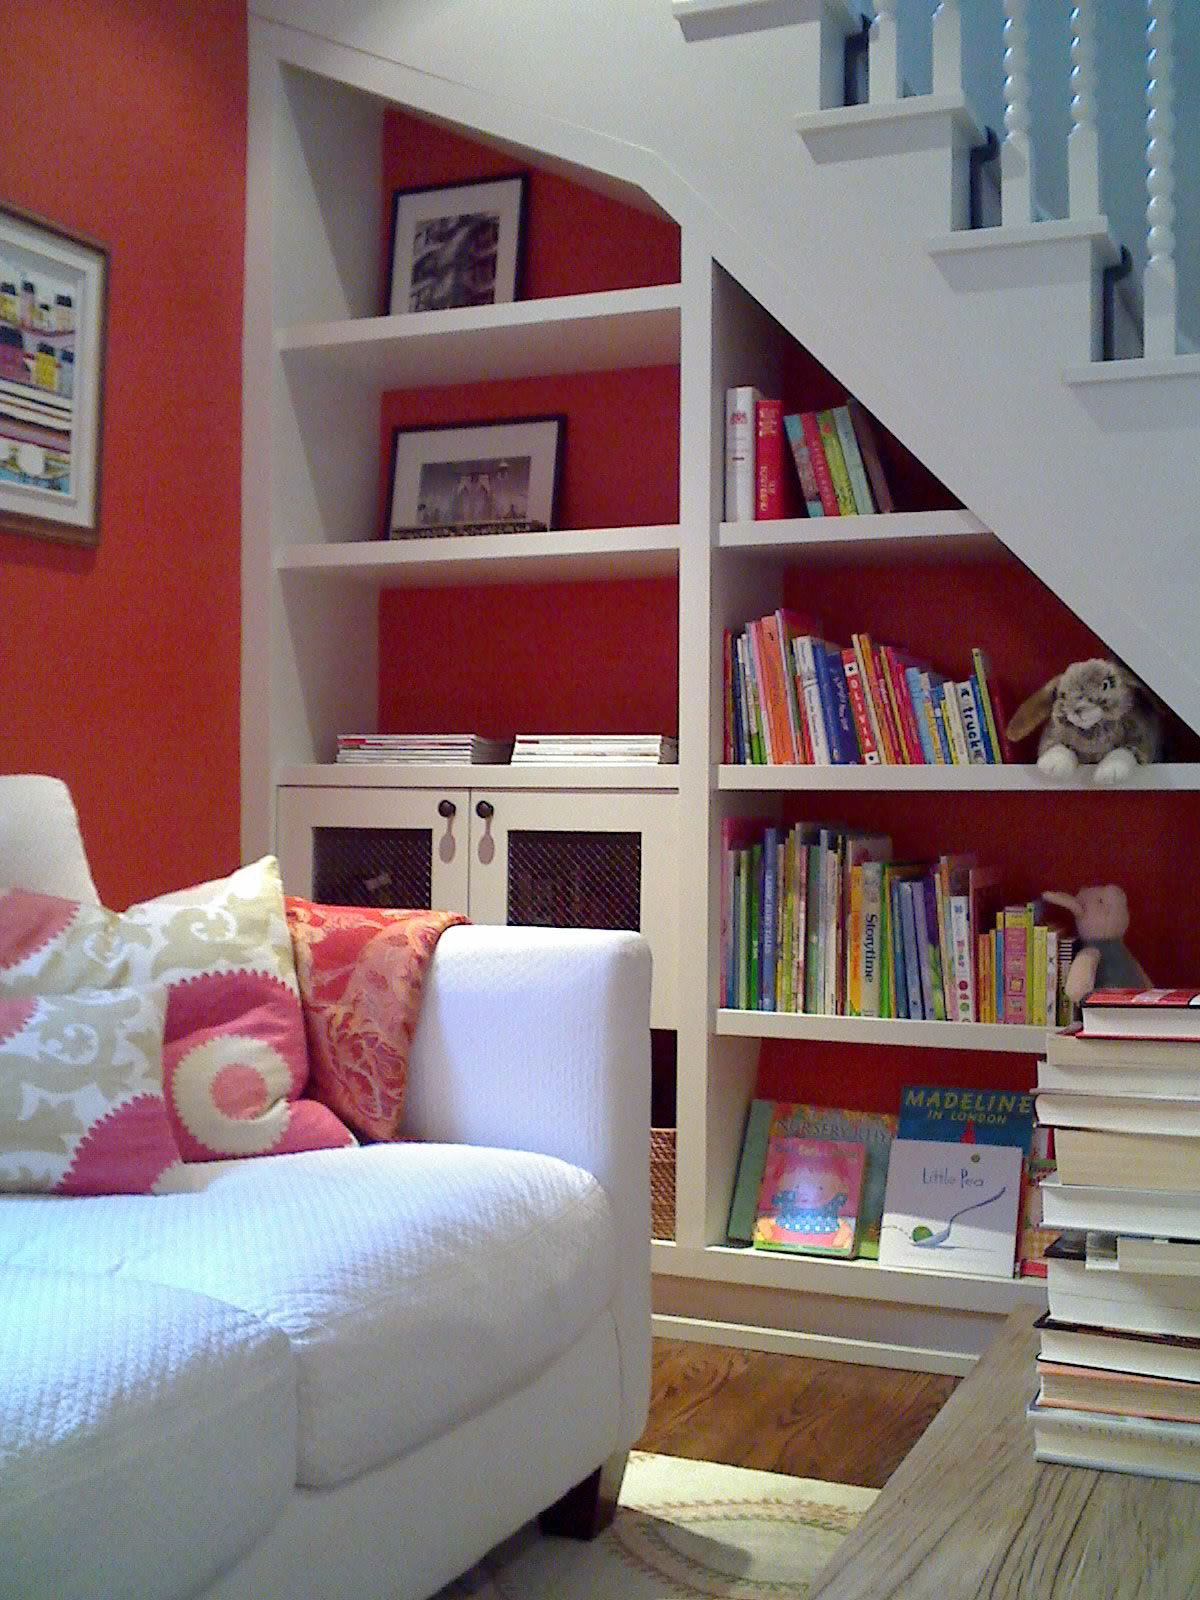 A kid-friendly reading nook